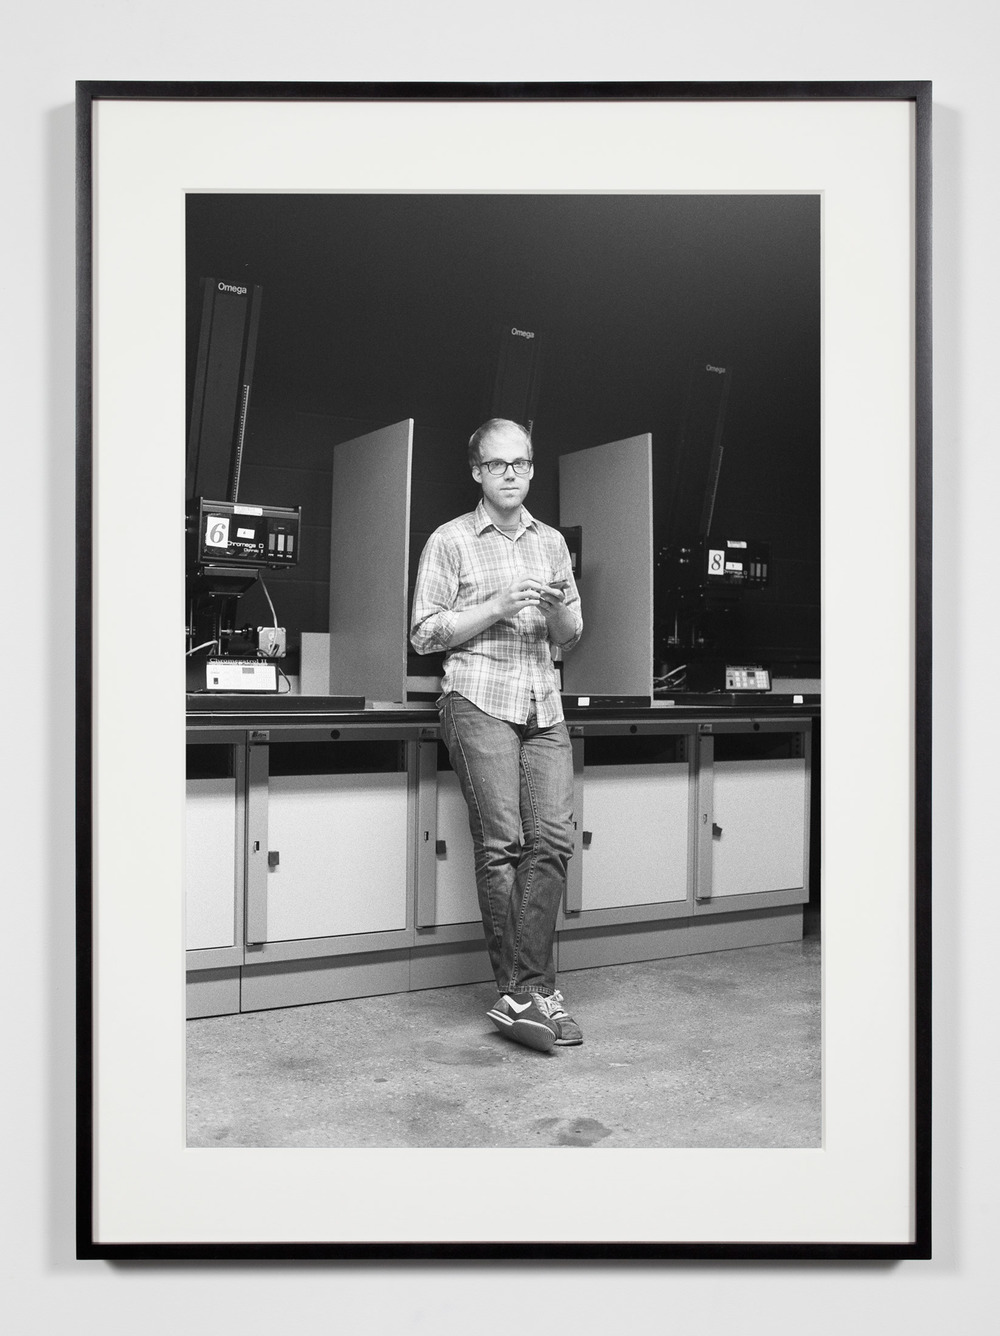 Darkroom Assistant (DE), Chicago, Illinois, August 21, 2008    2008   Epson Ultrachrome K3 archival ink jet print on Hahnemühle Photo Rag paper  36 3/8 x 26 3/8 inches   Industrial Portraits, 2008–